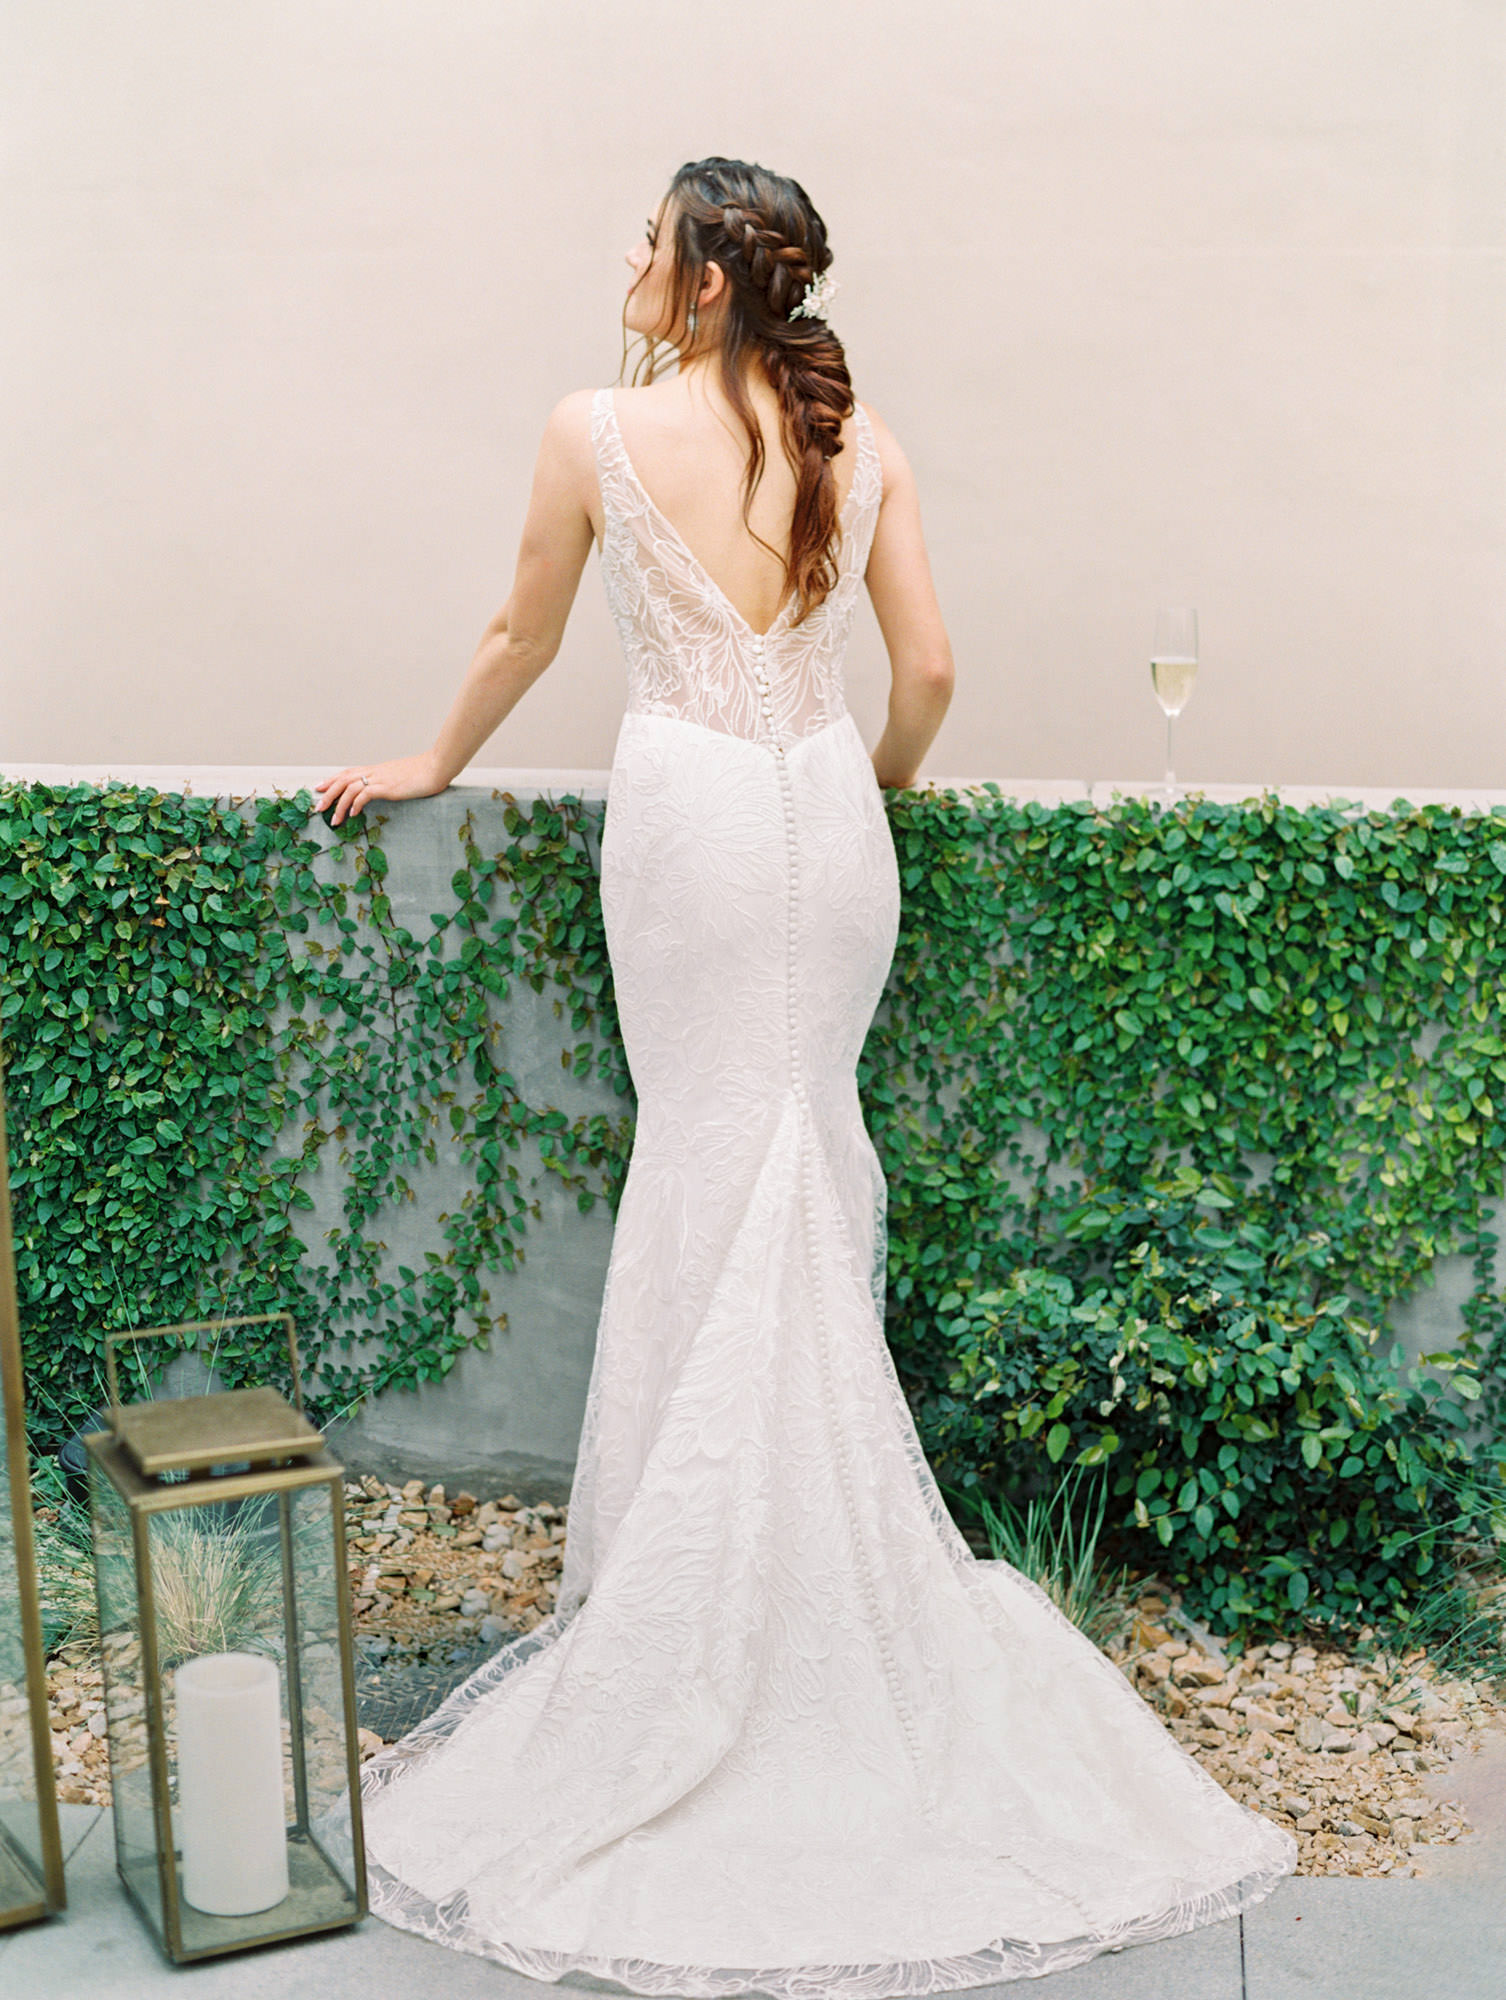 Low v back illusion beaded floral pattern with buttons all the way down the train. Gemma Kelly Faetanini wedding dress in San Diego by Cavin Elizabeth - San Diego film photographer